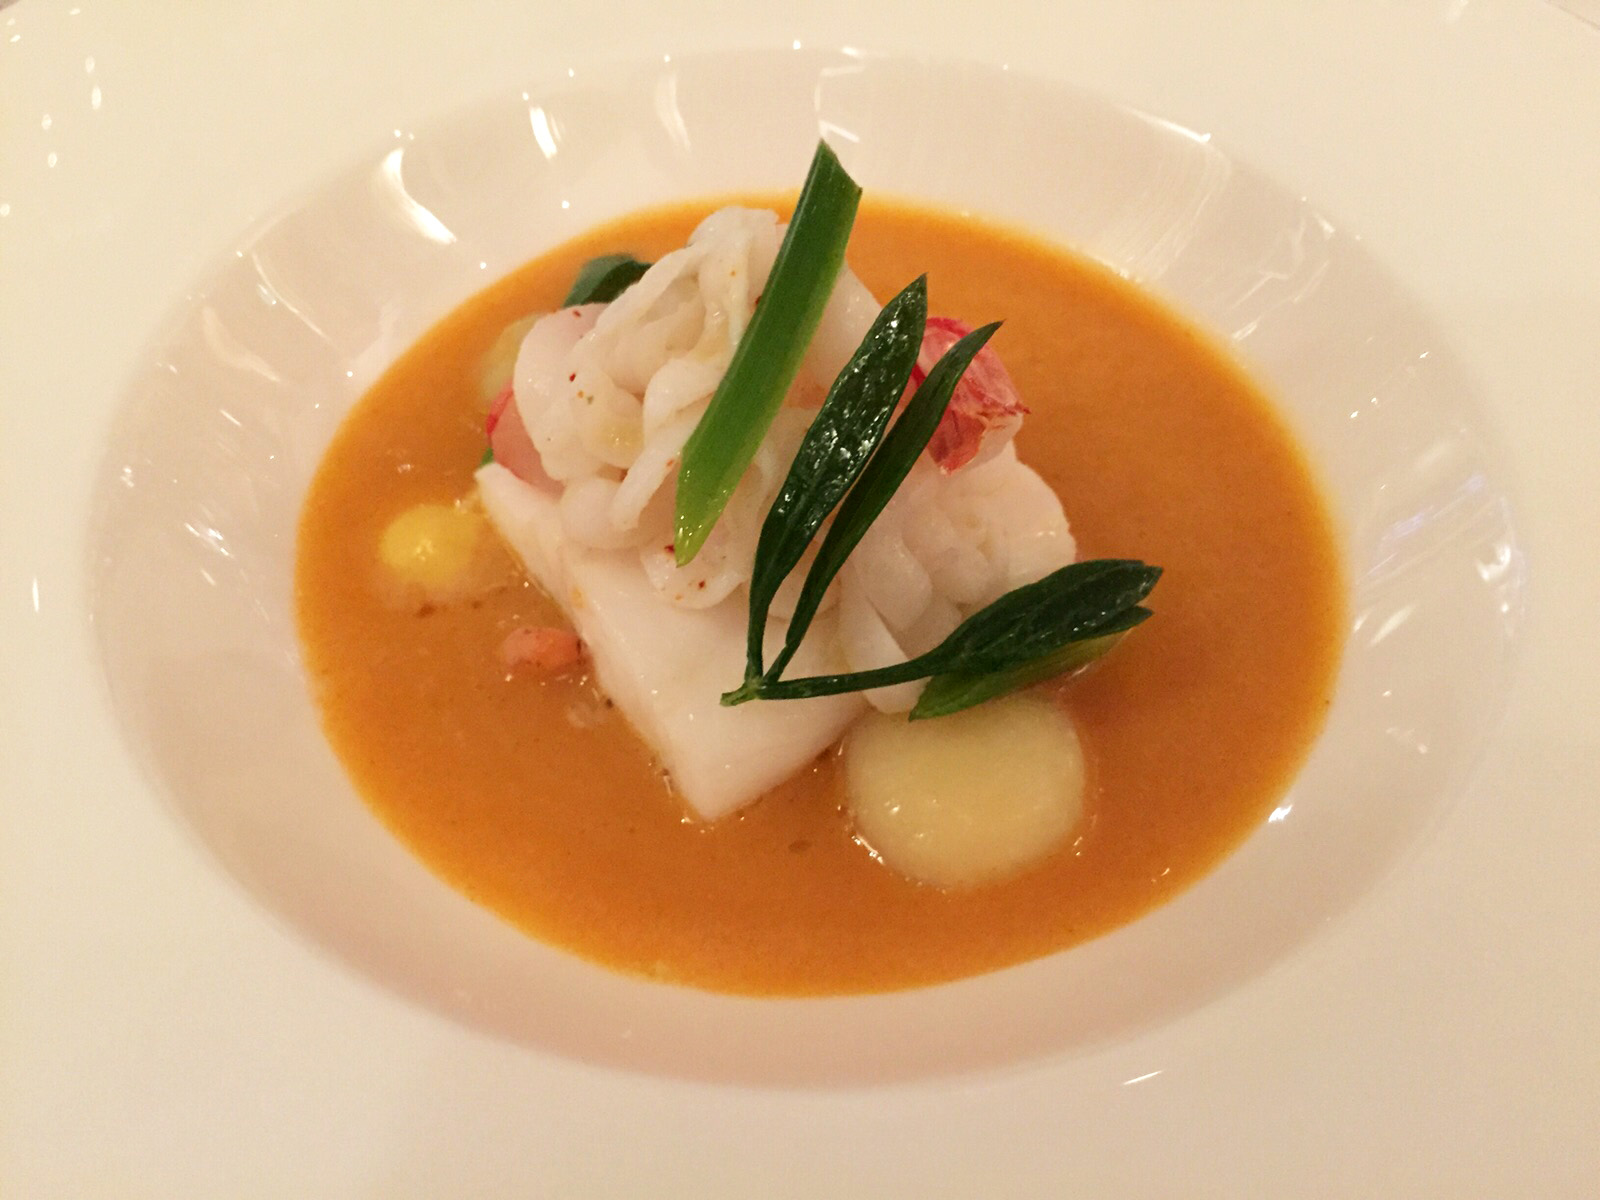 Review the dining room at the goring hotel beeston place cornish fish broth squid plaice red prawn roast garlic and saffron sxxofo